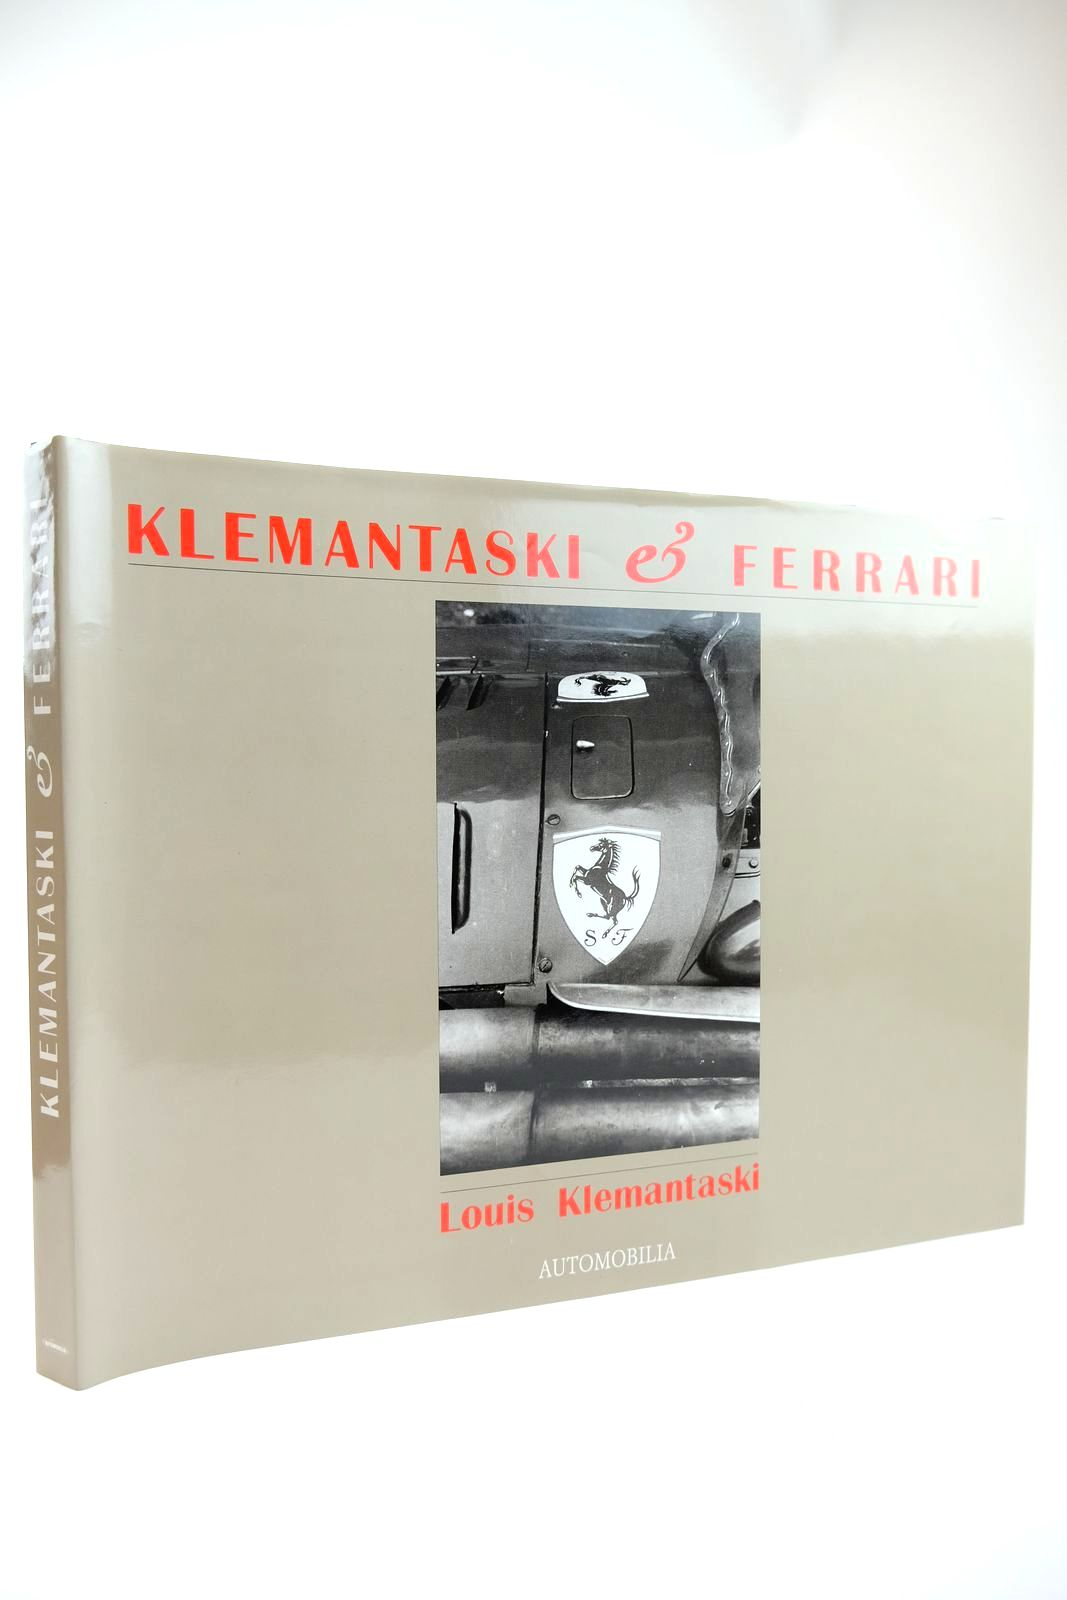 Photo of KLEMANTASKI & FERRARI written by Klemantaski, Louis Alexander, Jesse L. published by Automobilia (STOCK CODE: 2131779)  for sale by Stella & Rose's Books